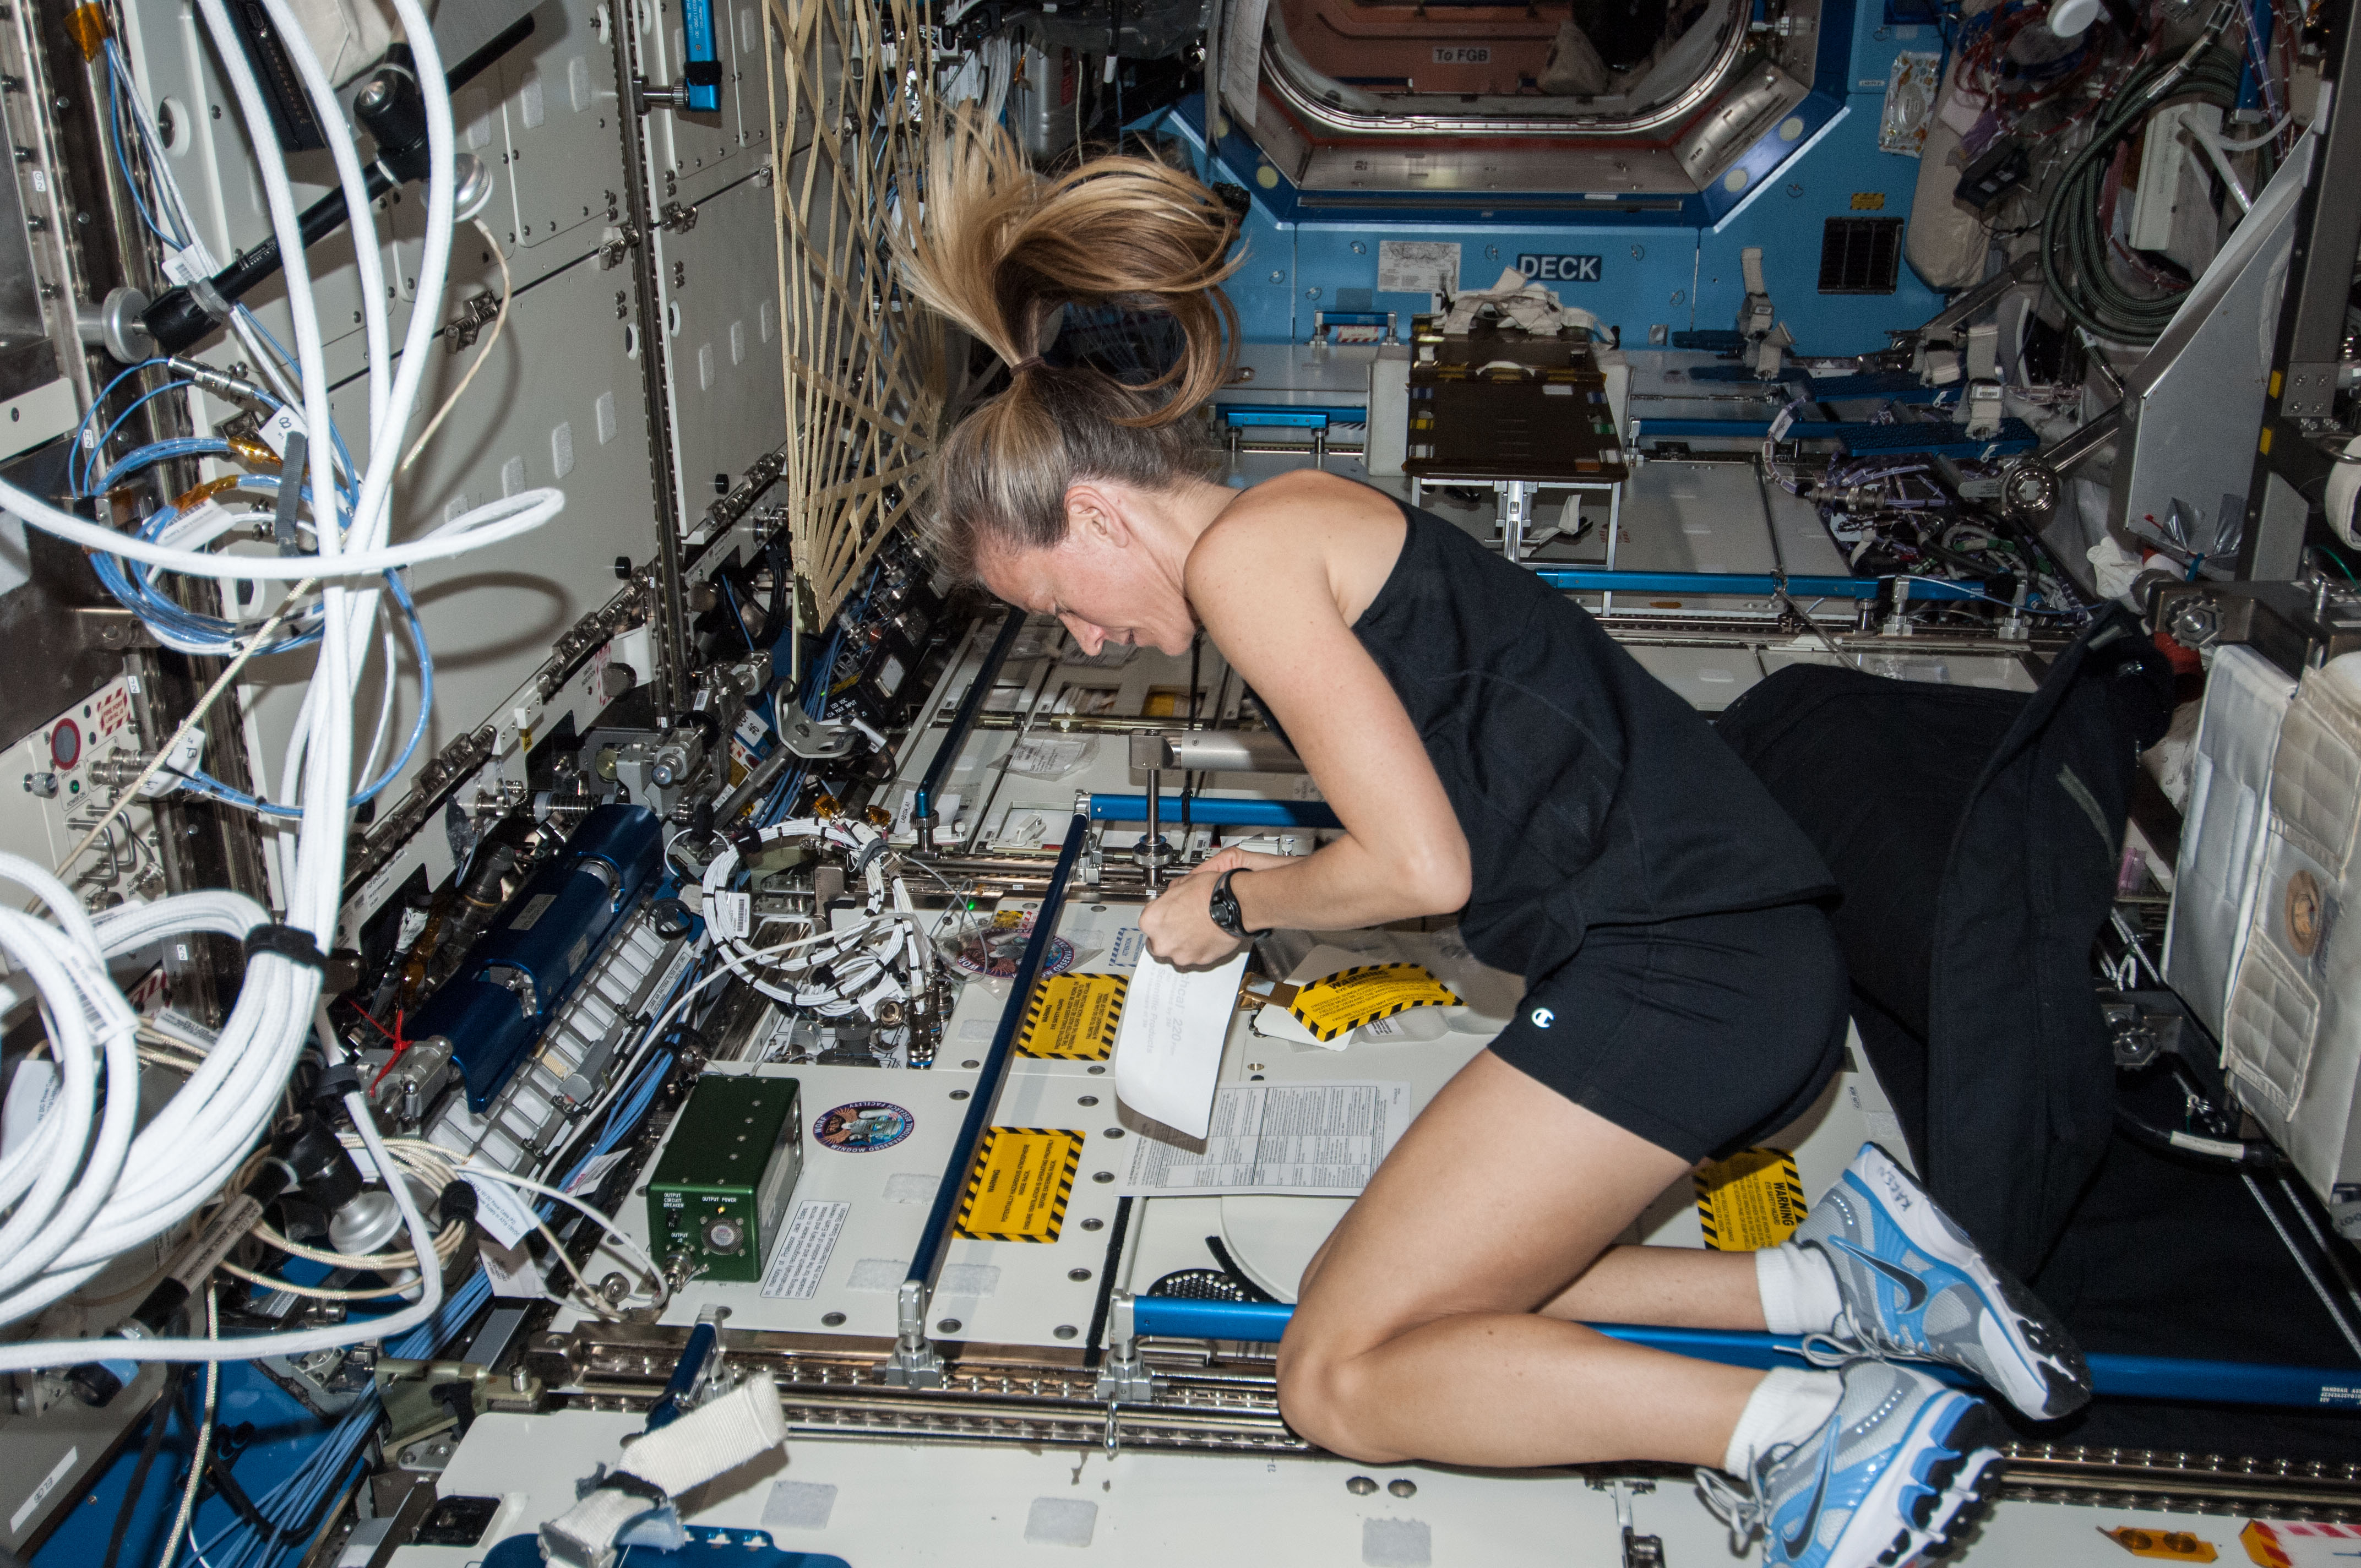 inside space station bed - photo #45